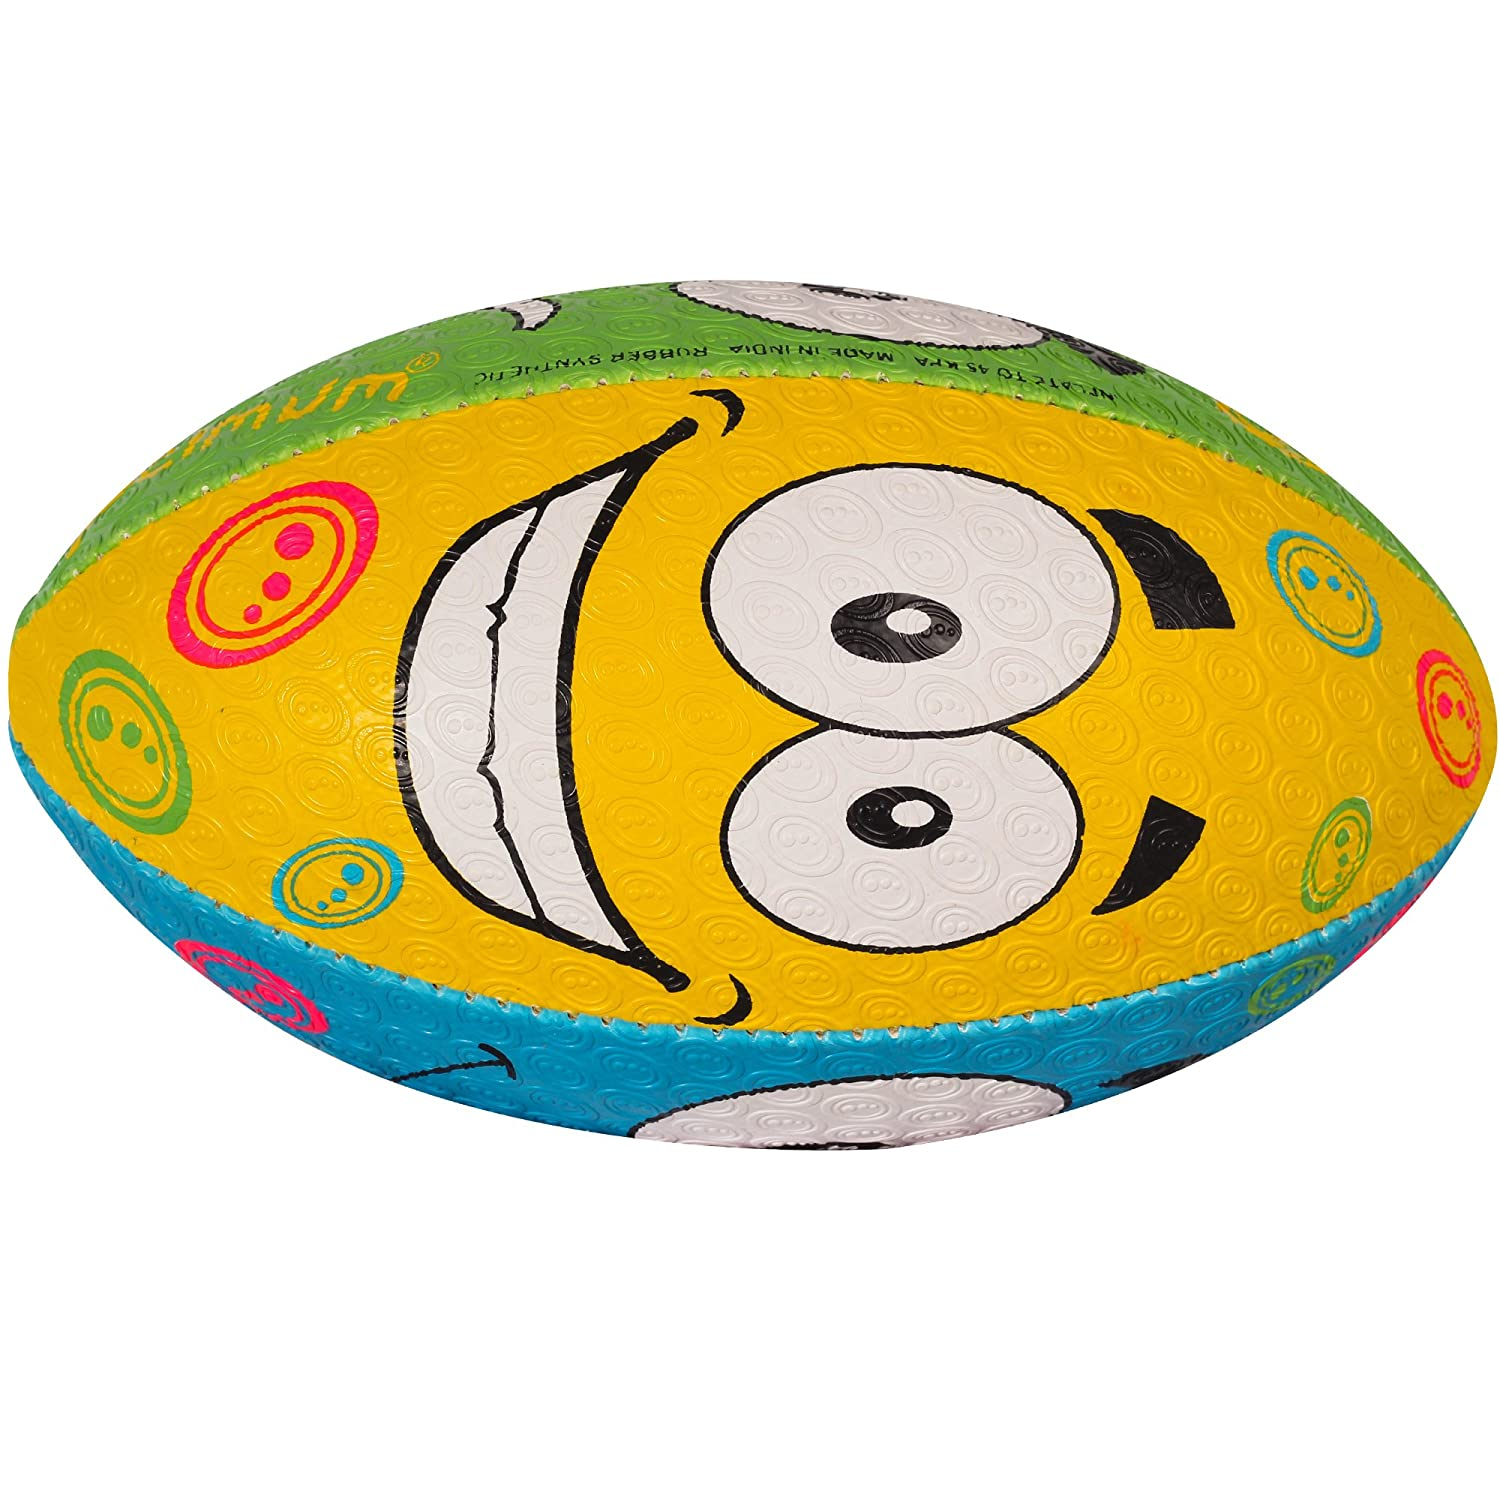 Optimum Rugby Ball